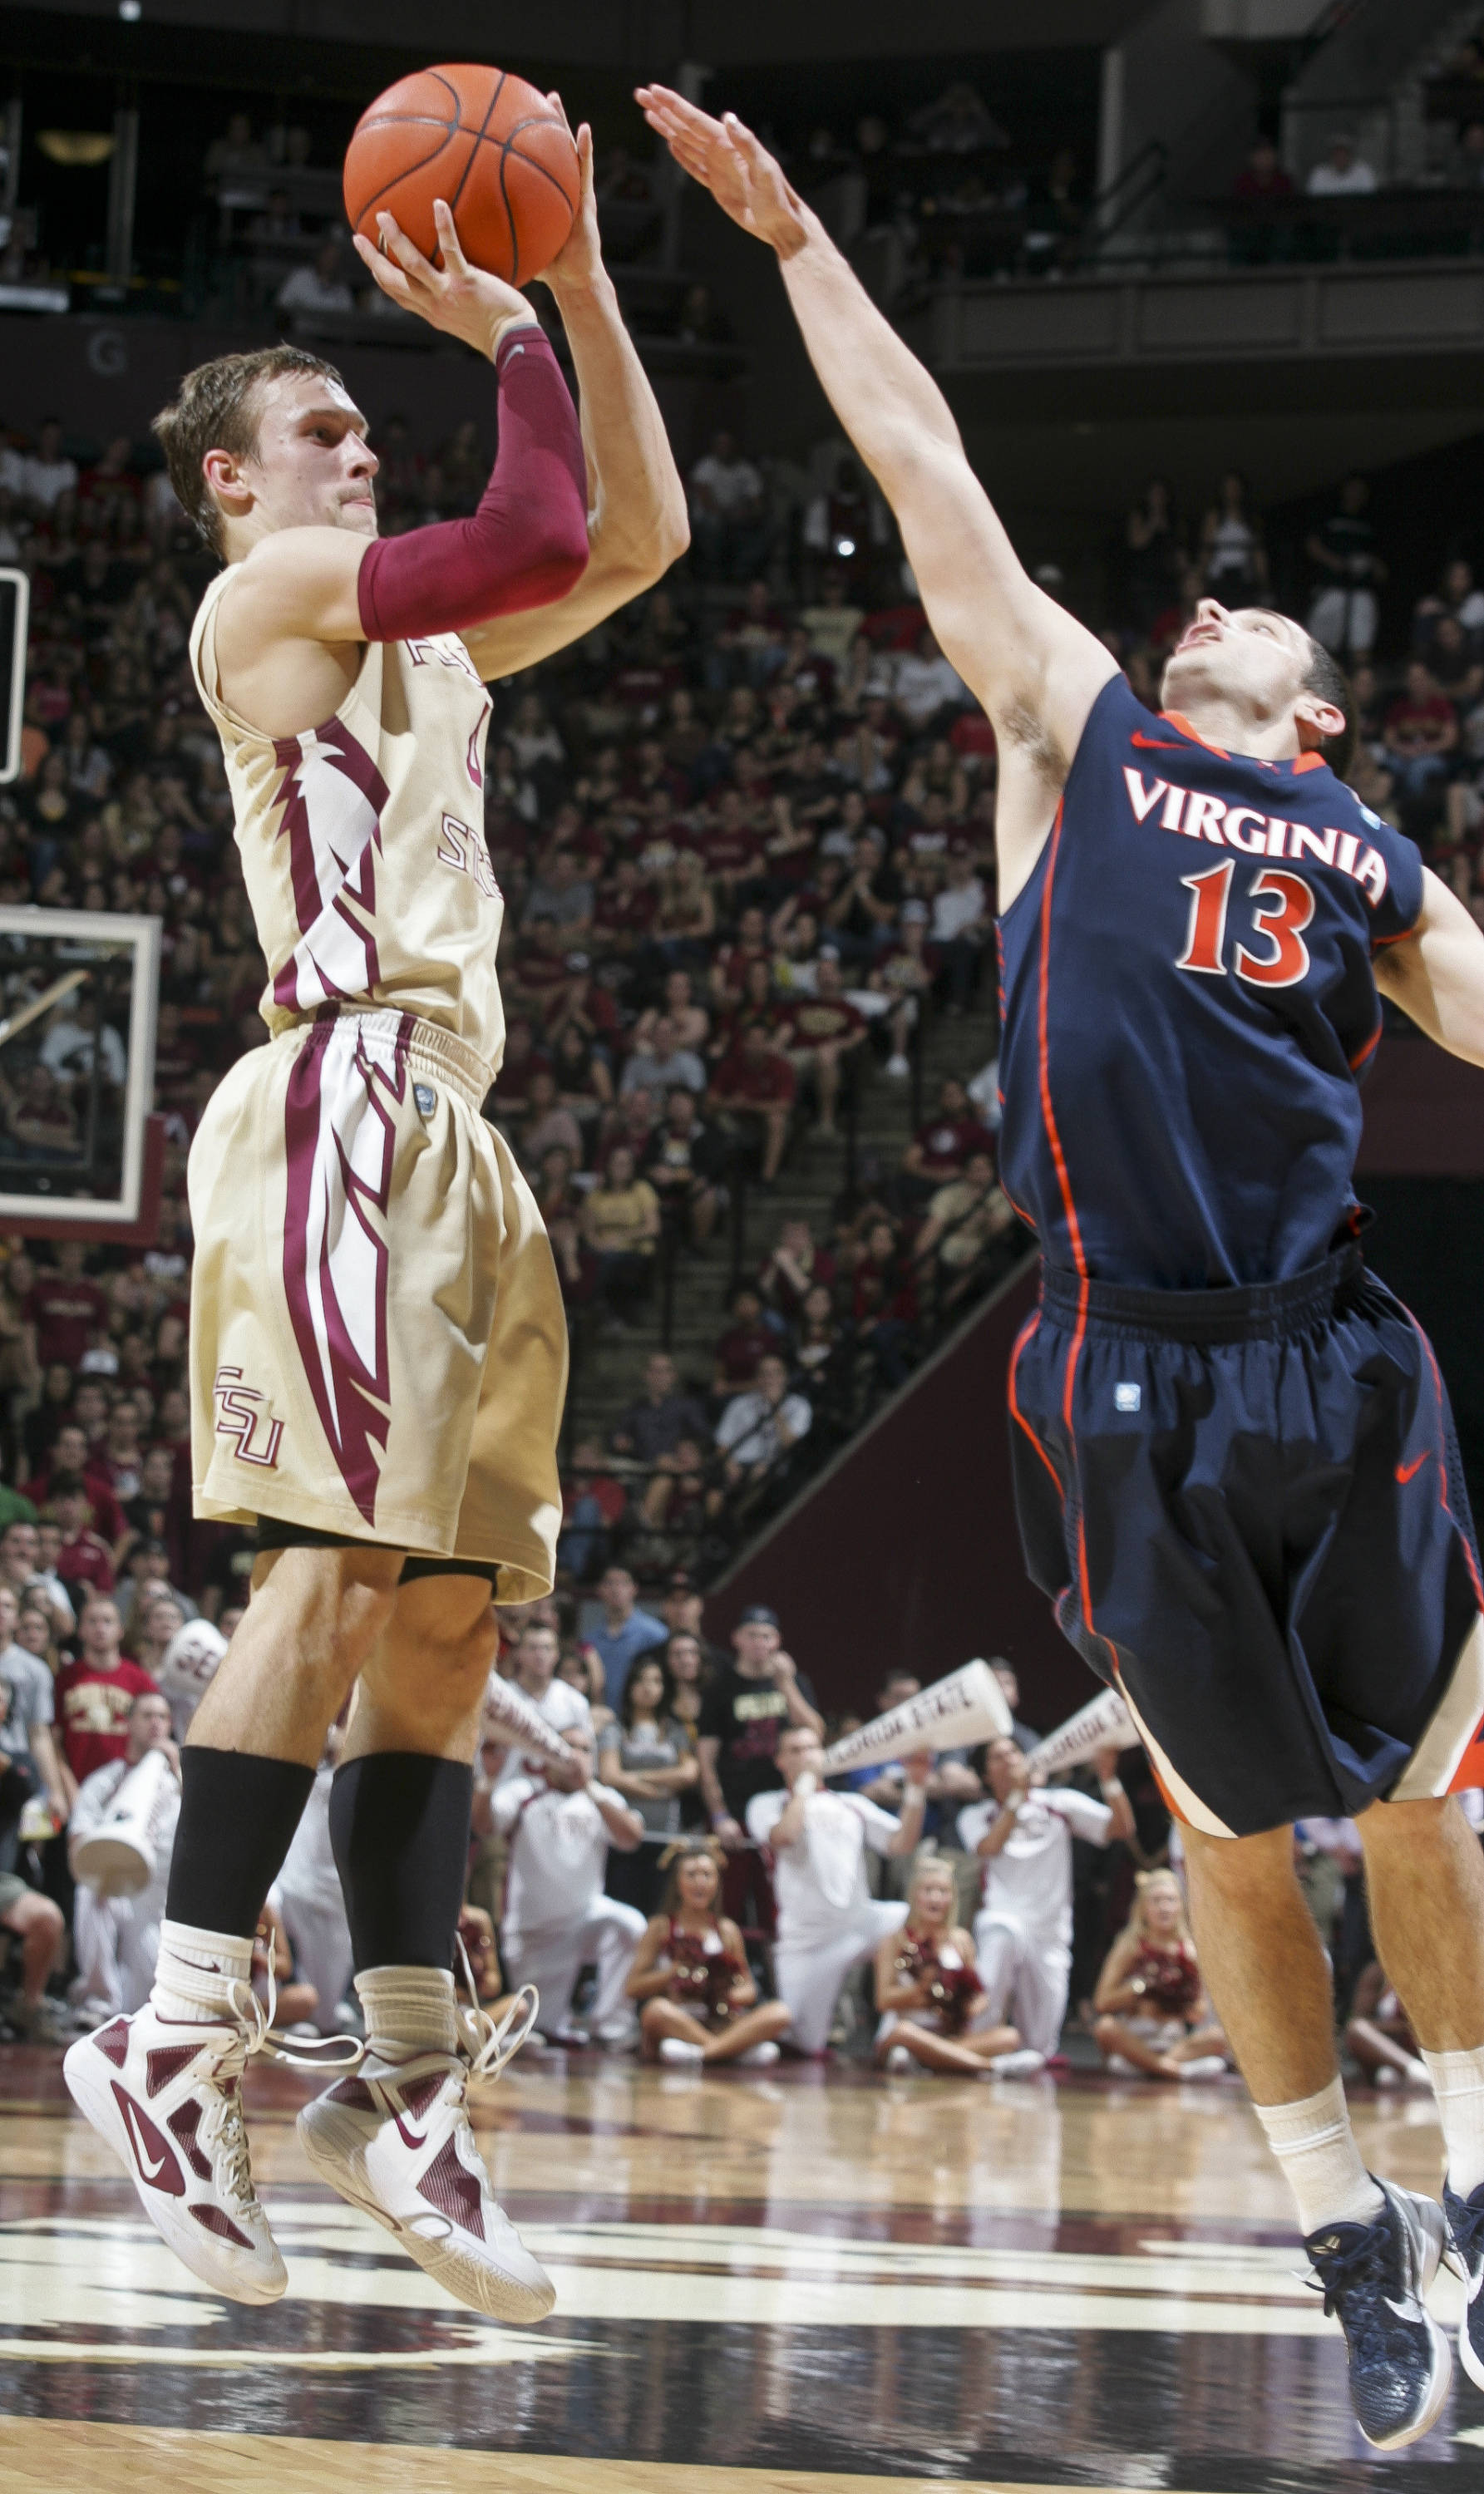 Florida State's Deividas Dulkys (4) makes a basket over the defense of Virginia's Sammy Zeglinski (13) in the first half of an NCAA college basketball game on Saturday, Feb. 4, 2012, in Tallahassee, Fla. Florida State won 58-55. (AP Photo/Phil Sears)